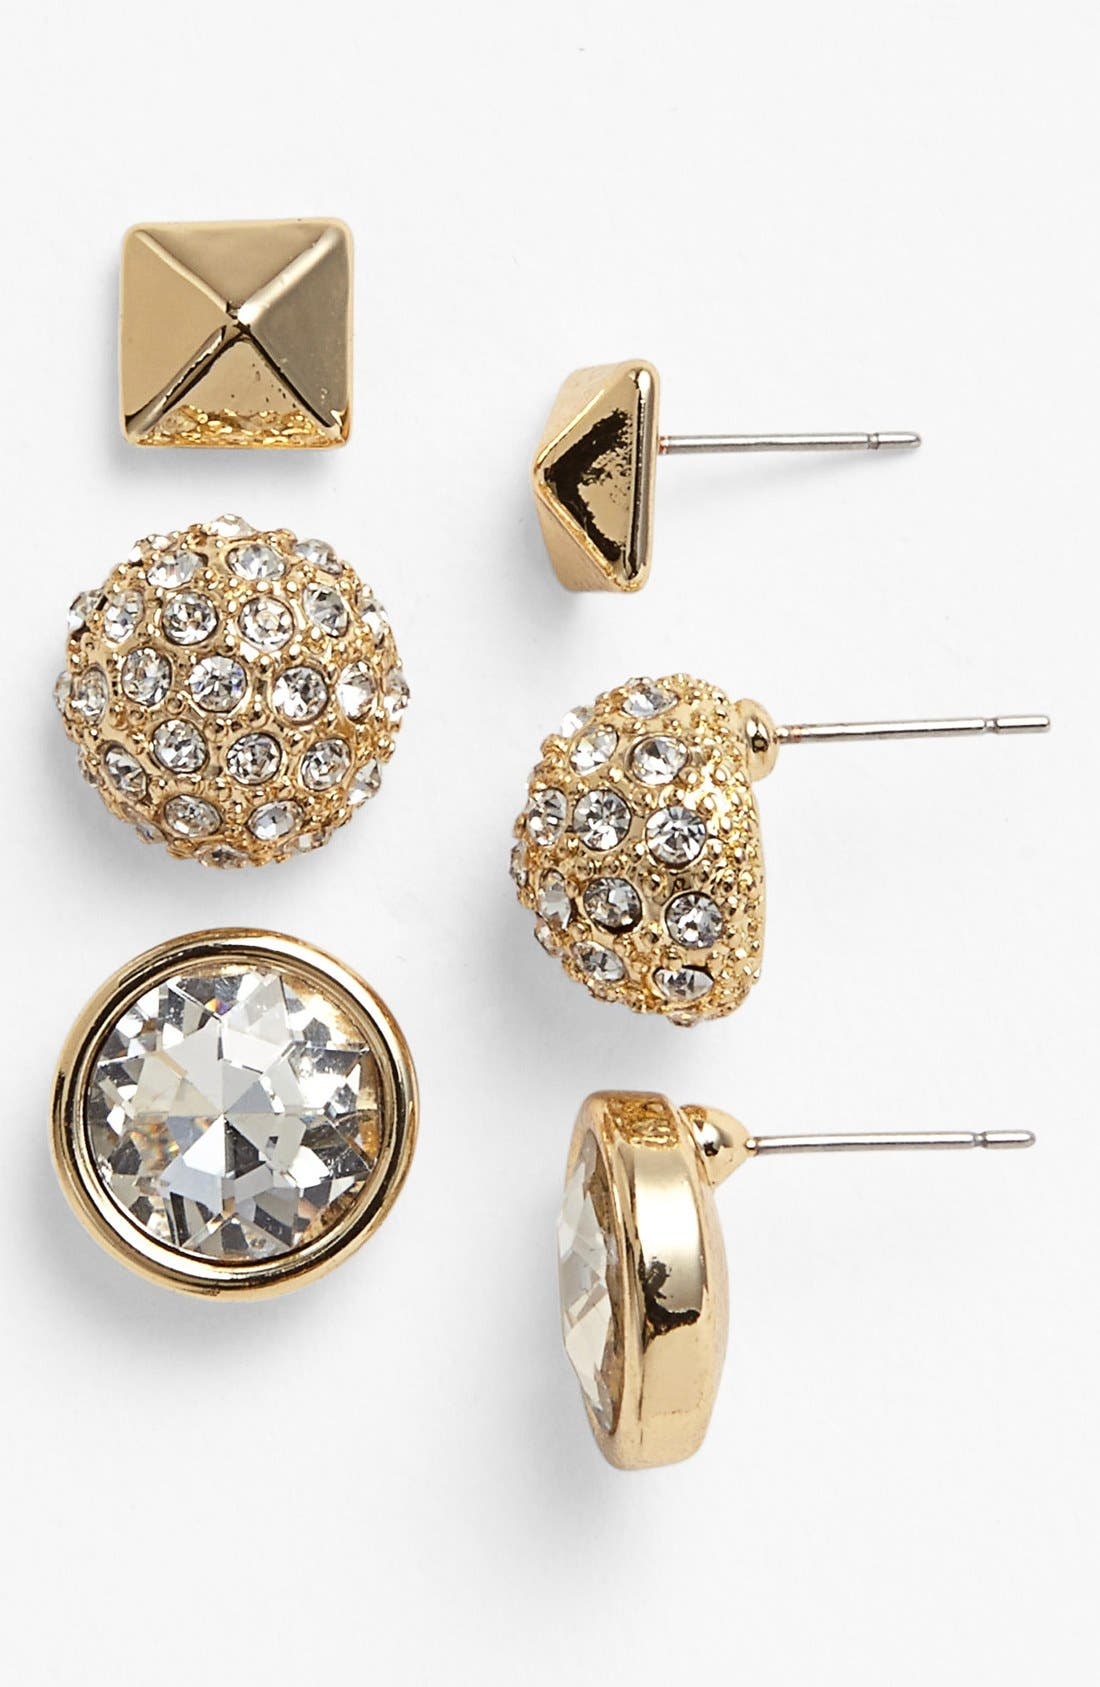 Alternate Image 1 Selected - Lydell NYC 'Preppy' Boxed Stud Earrings (Set of 3)